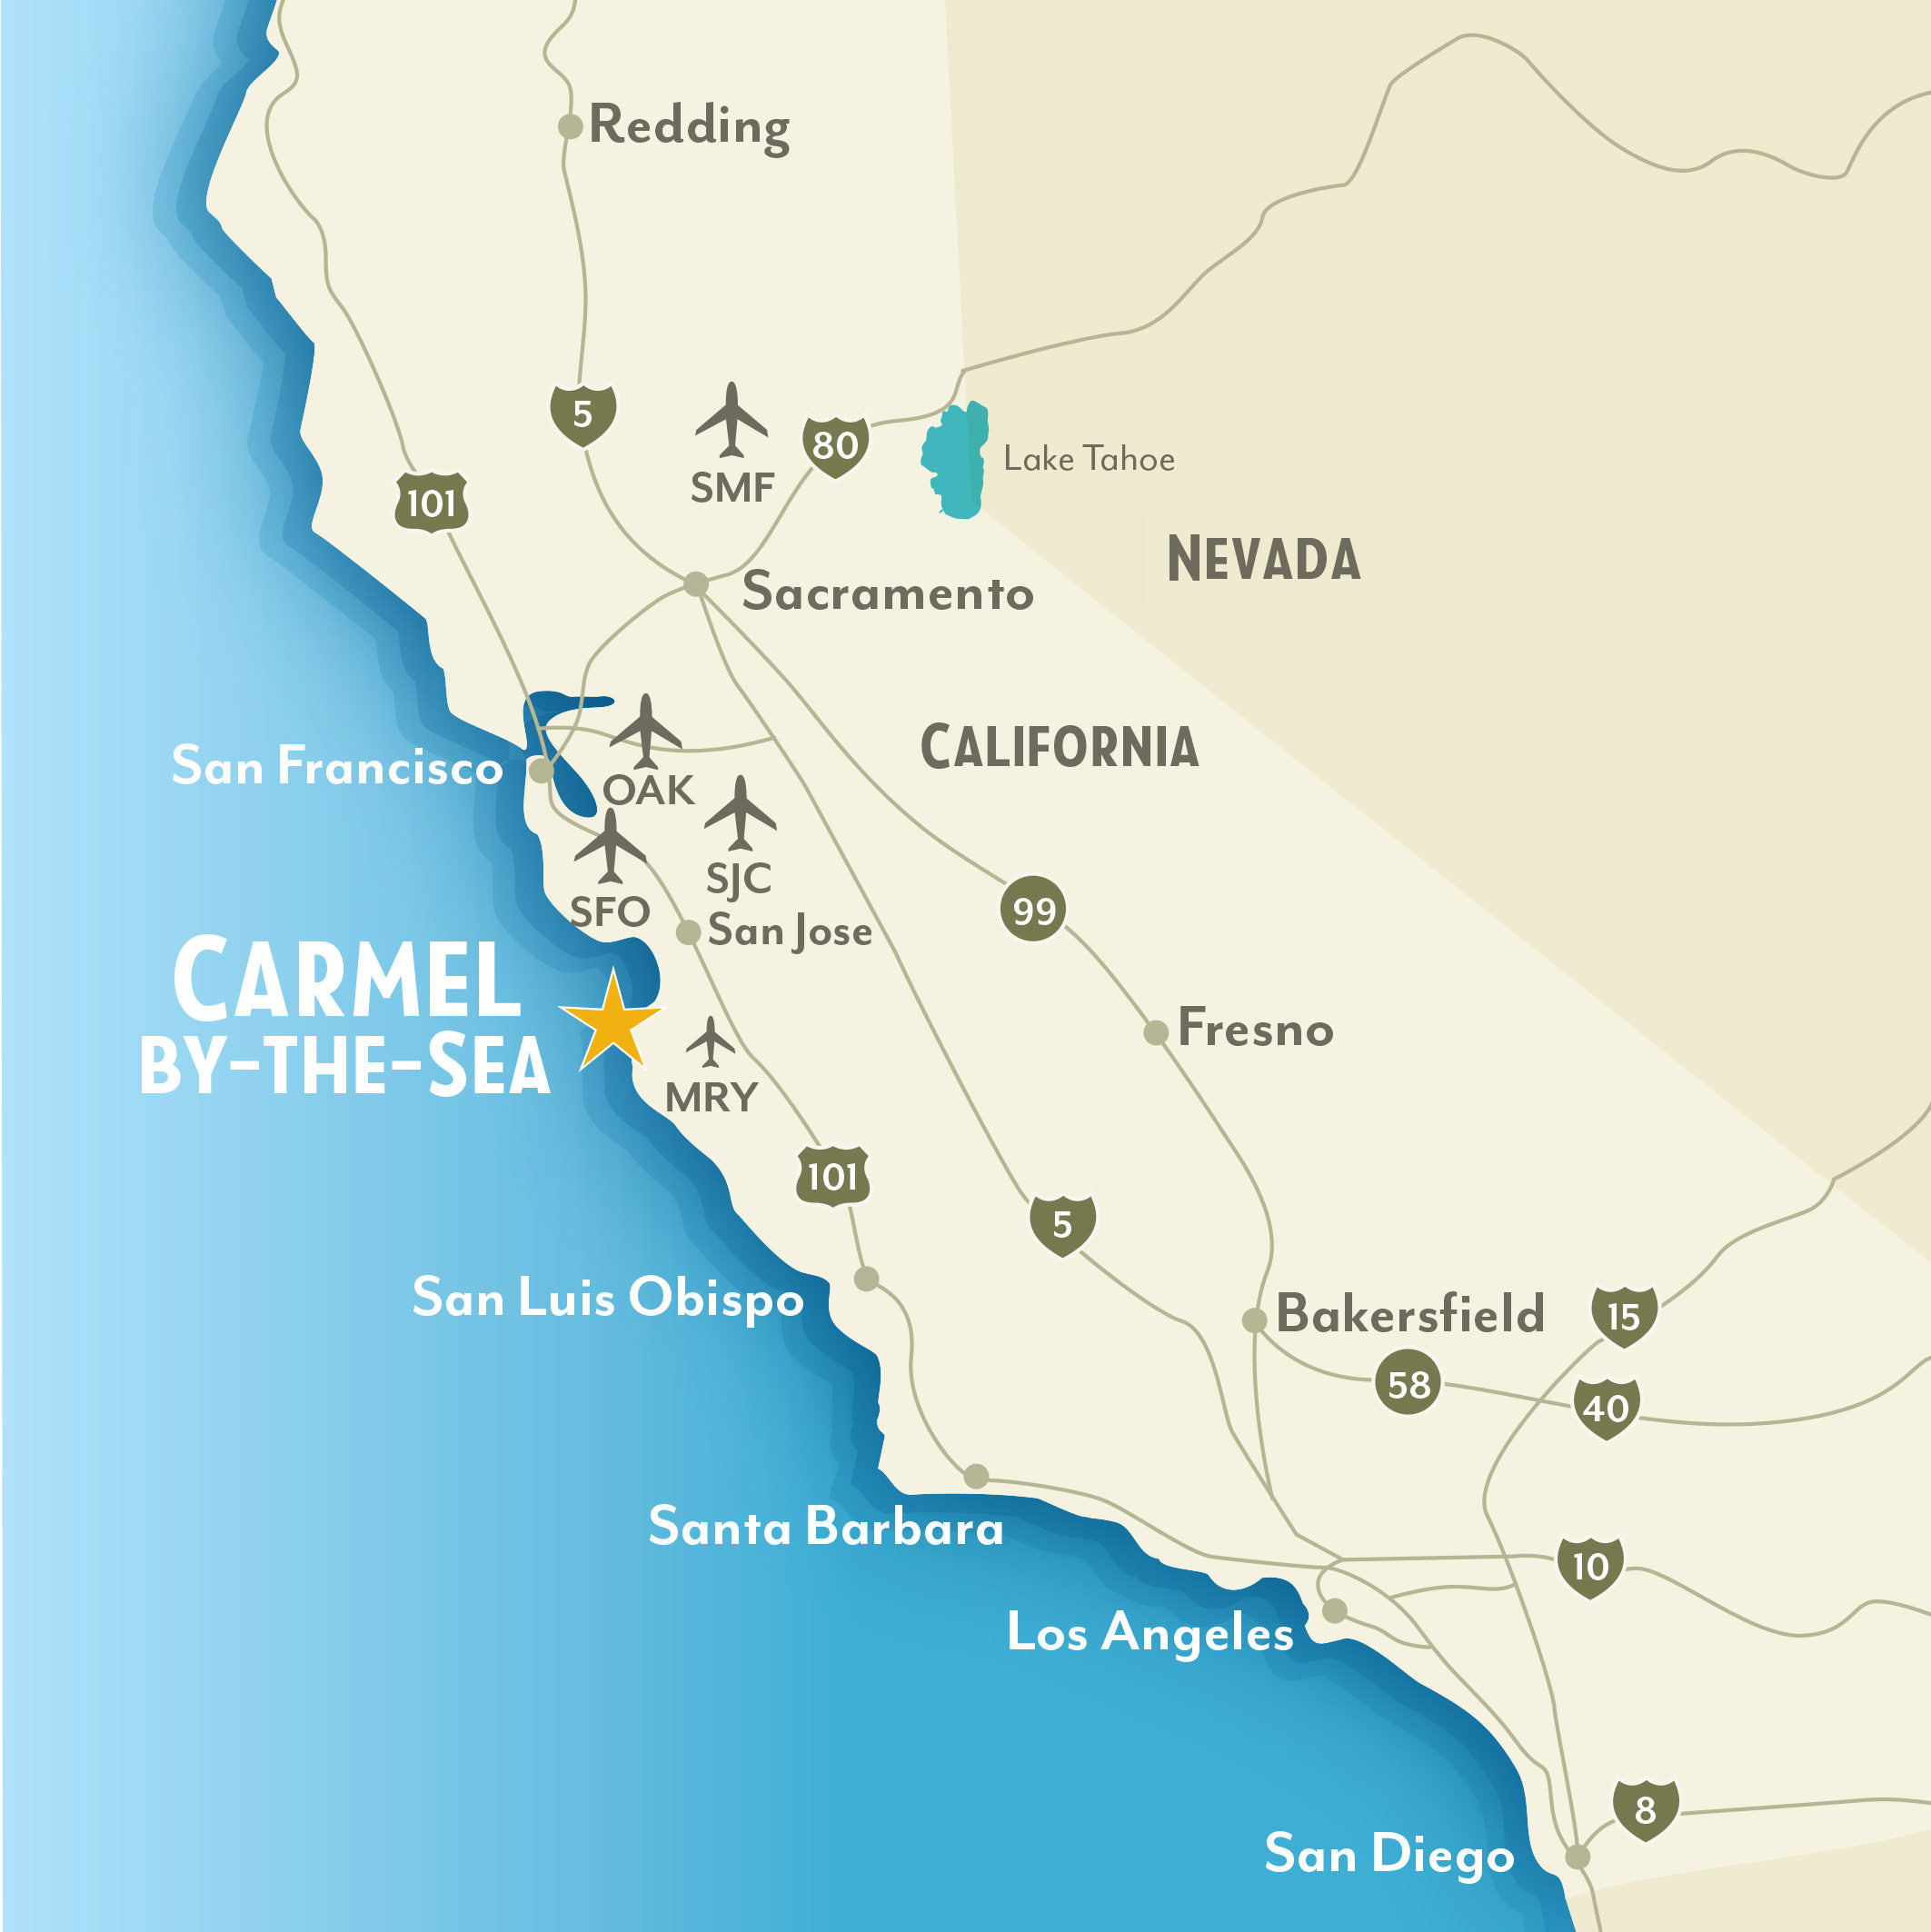 vegas hotel map with Carmel Maps And Directions on Lloret De Mar Tourist Map moreover Mn Reiseroute likewise Carmel Maps And Directions further Koh Lipe Th besides File Mirage hotel.